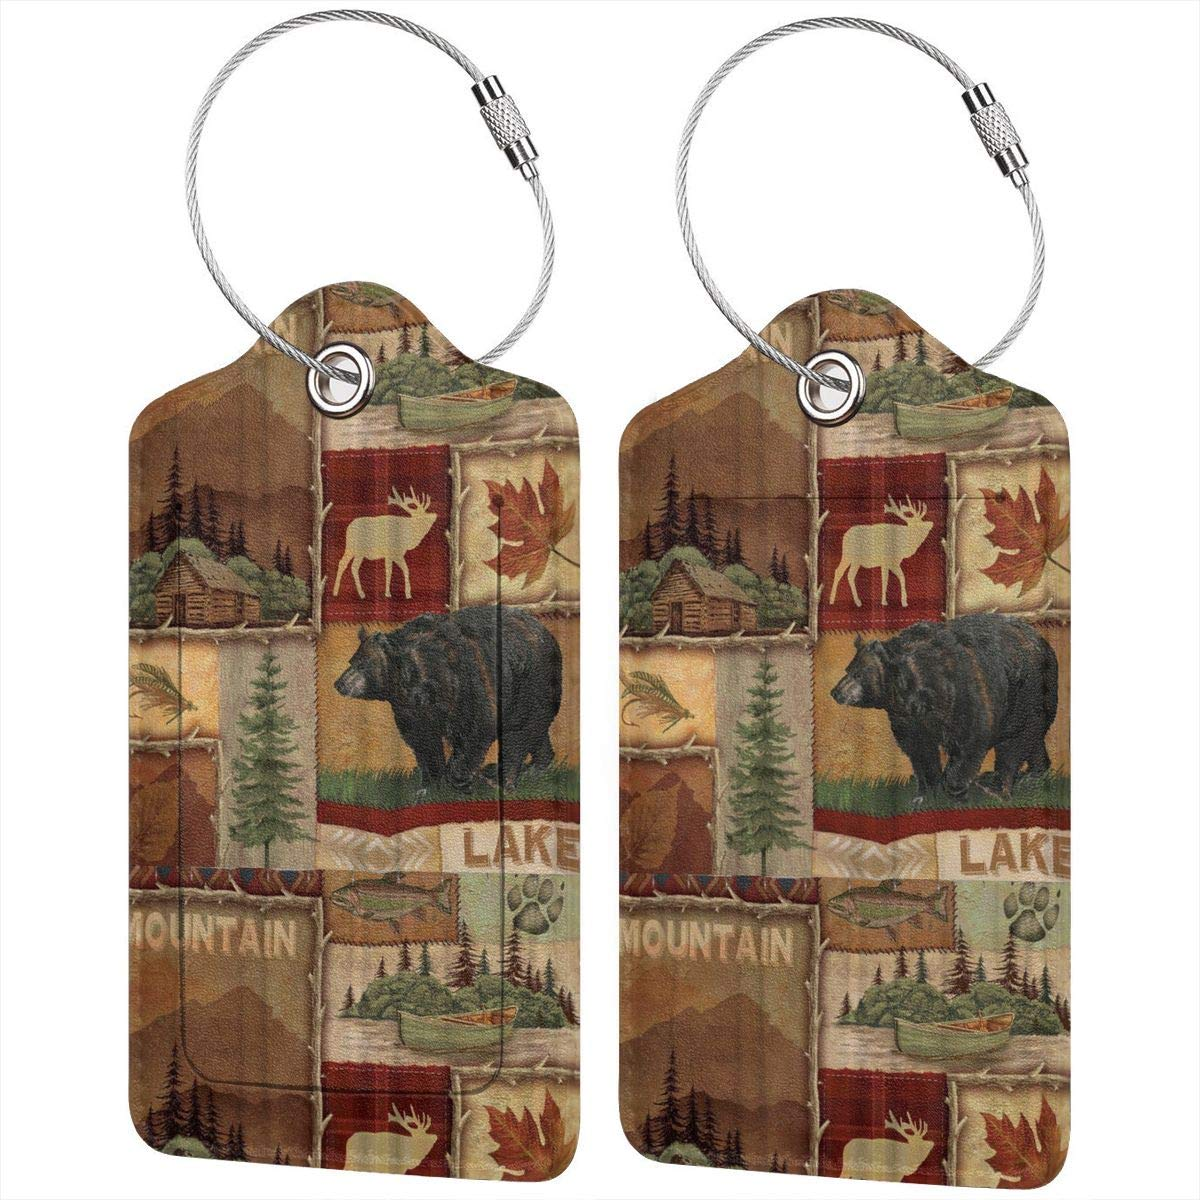 Rustic Lodge Bear Moose Leather Luggage Tags Personalized Suitcase Tag With Adjustable Strap